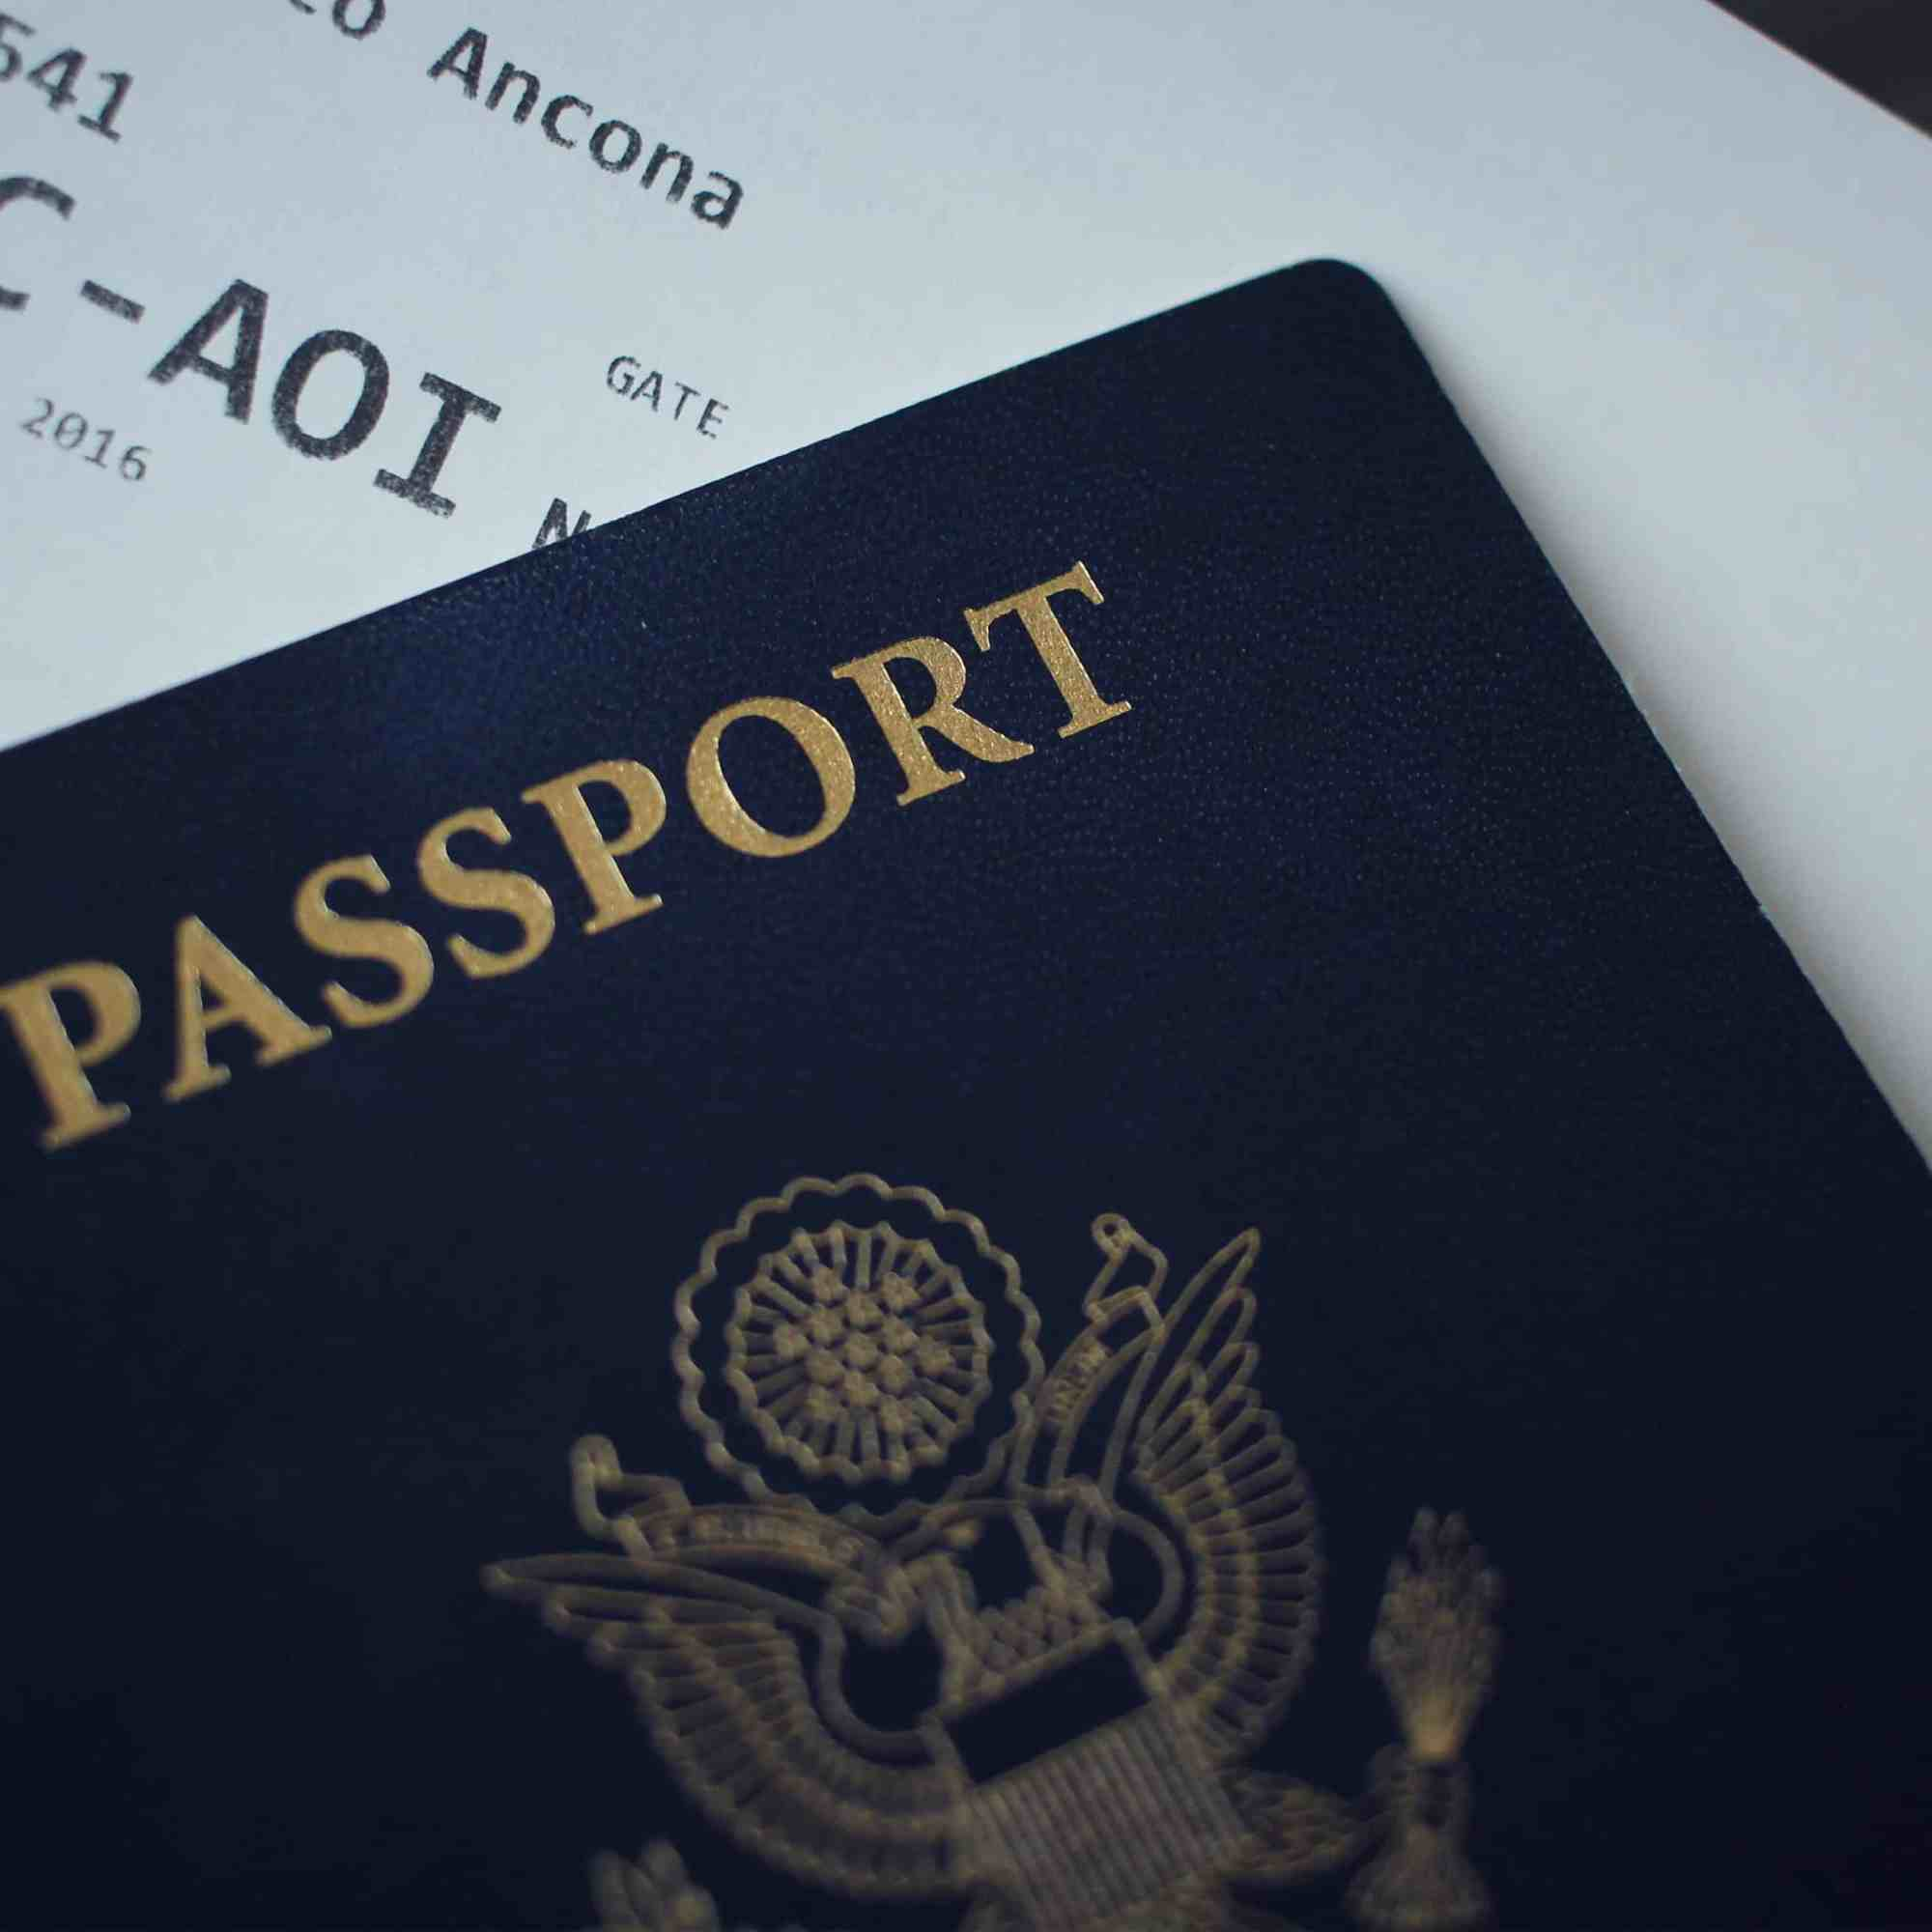 Check the validity on your passport